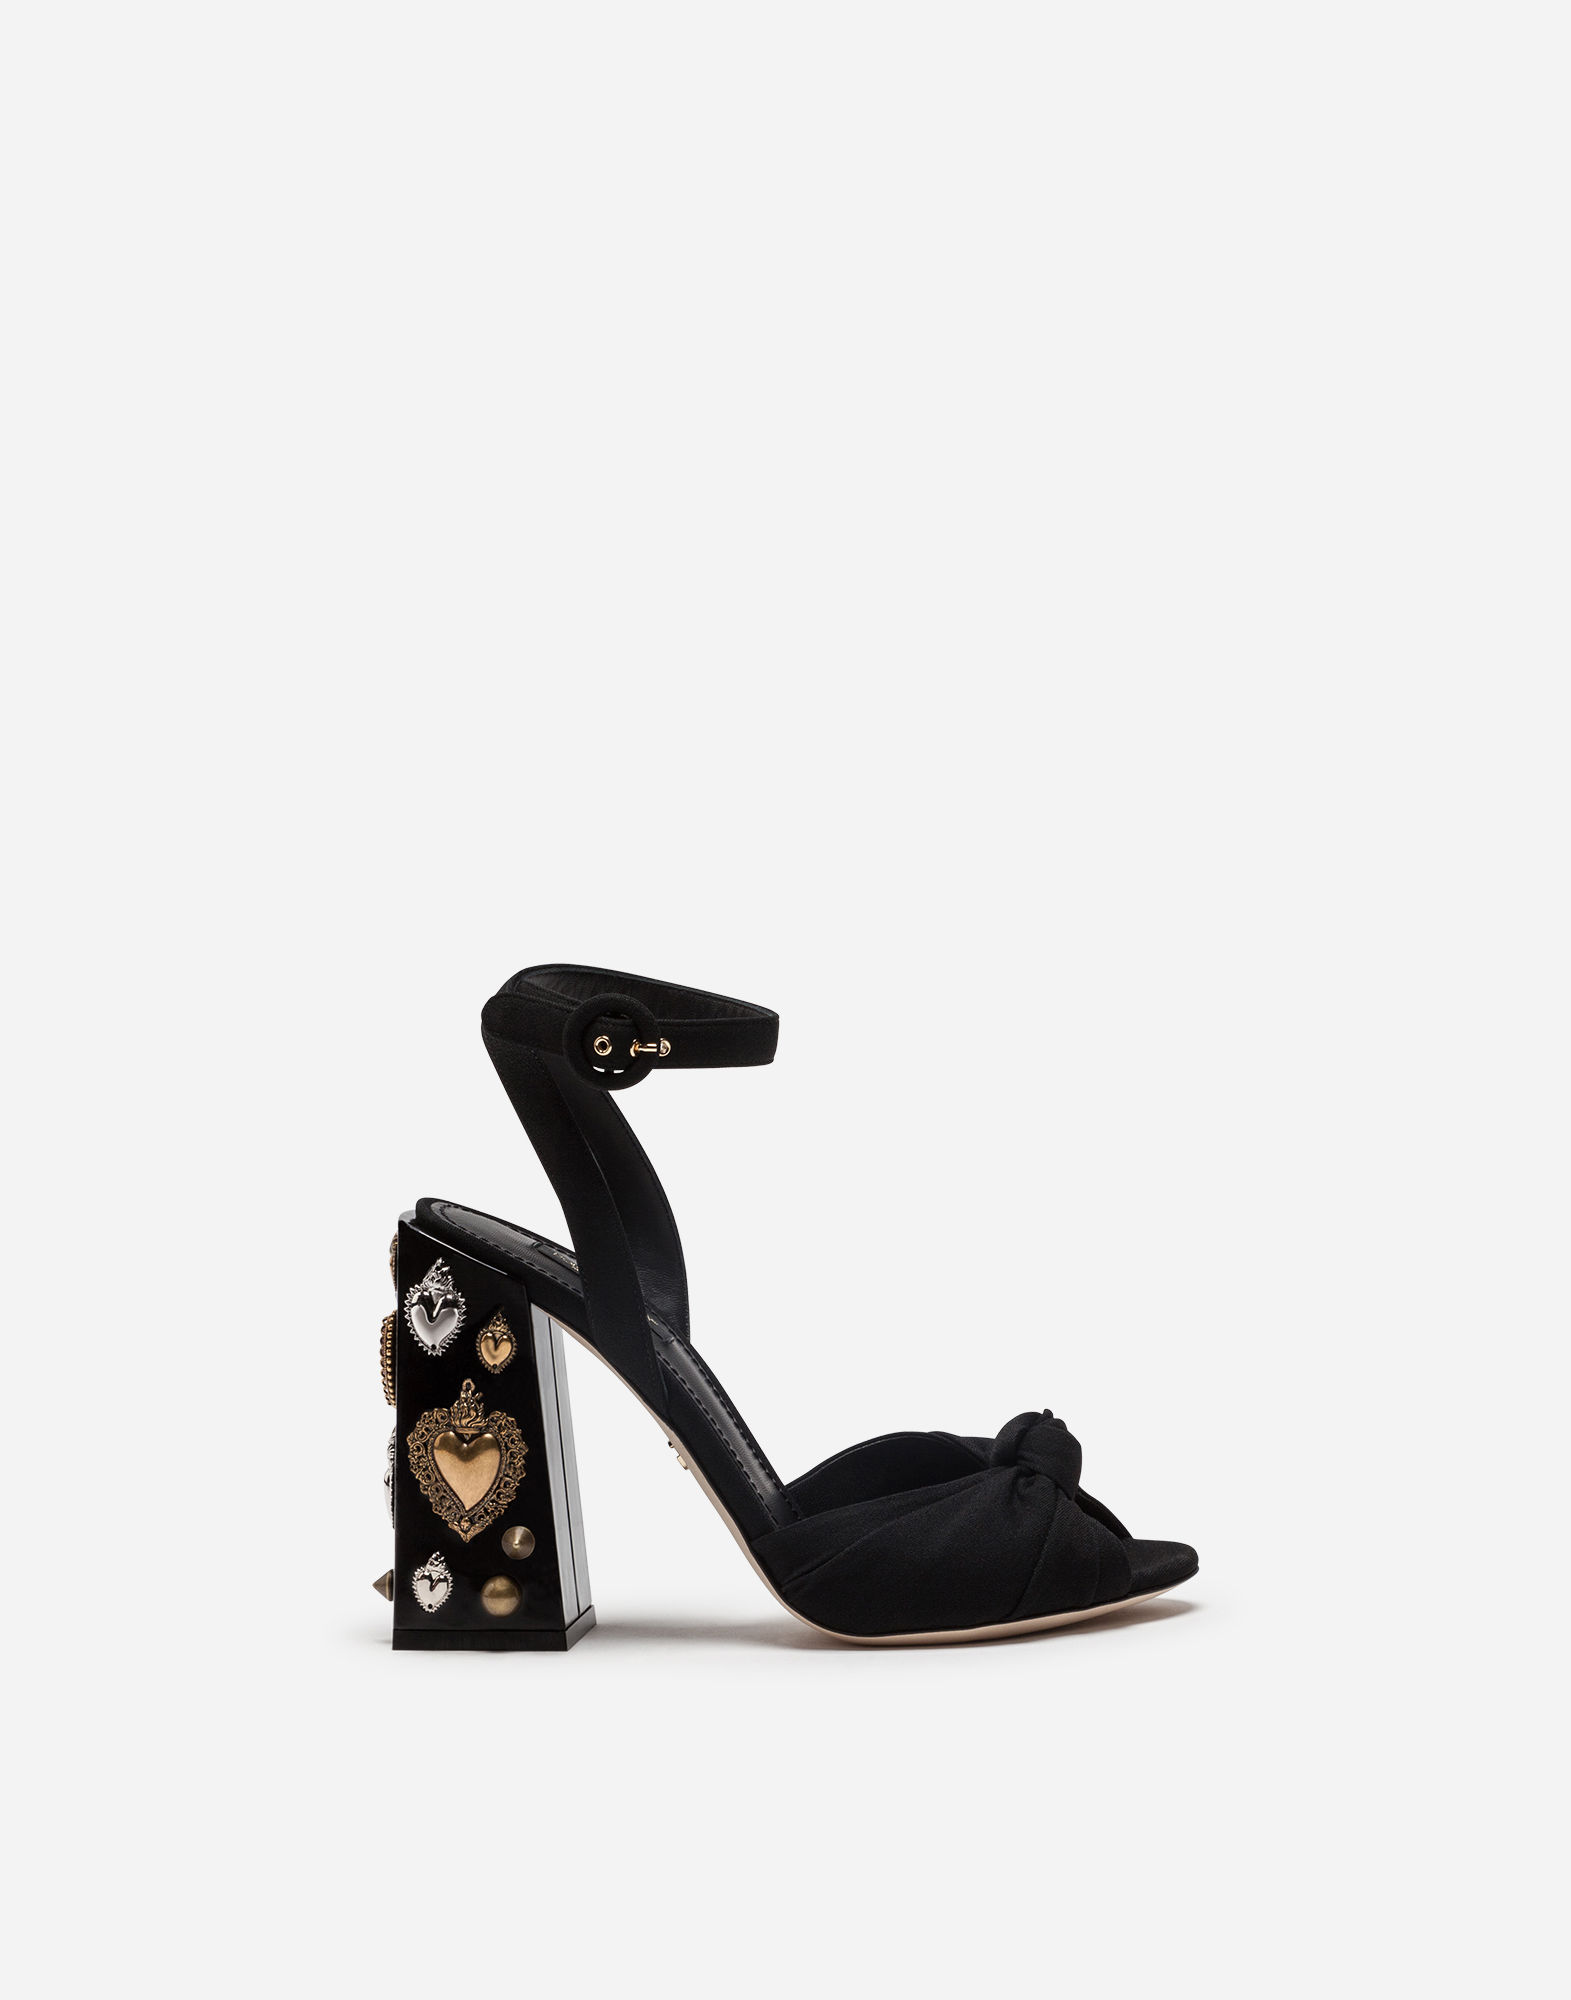 1571x2000 These Dolce Amp Gabbana Crown Shoes Are More Princess Like Than